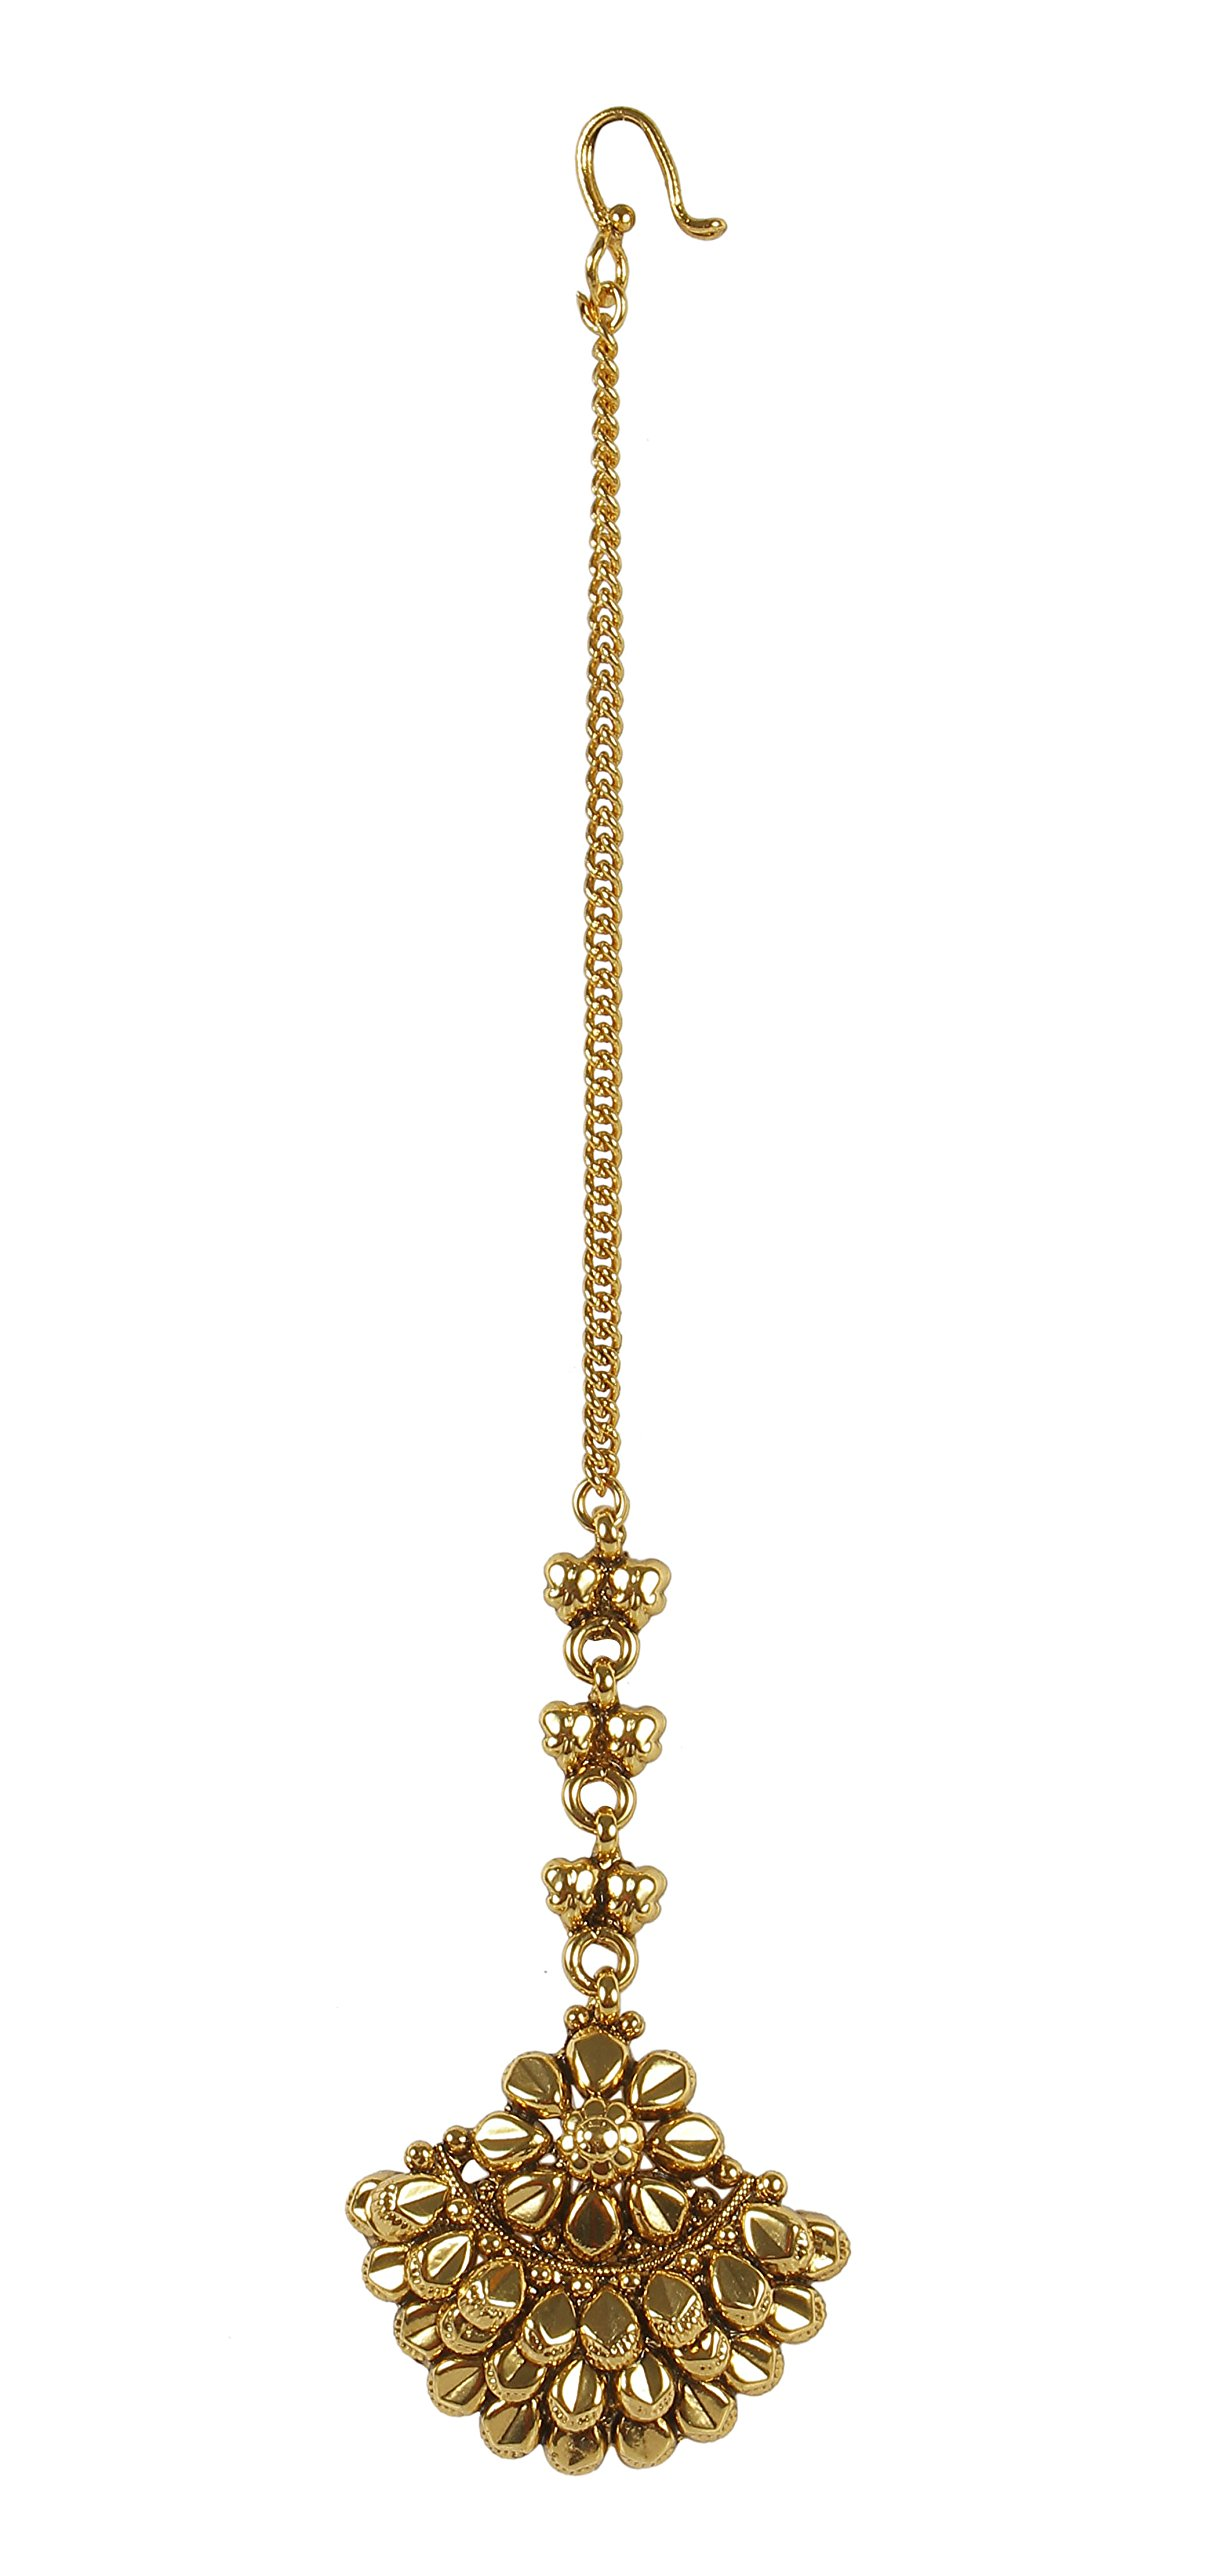 MUCH-MORE Indian Glamorous Style Party wear Maang Tikka Forehead Traditional Jewelry (2228)